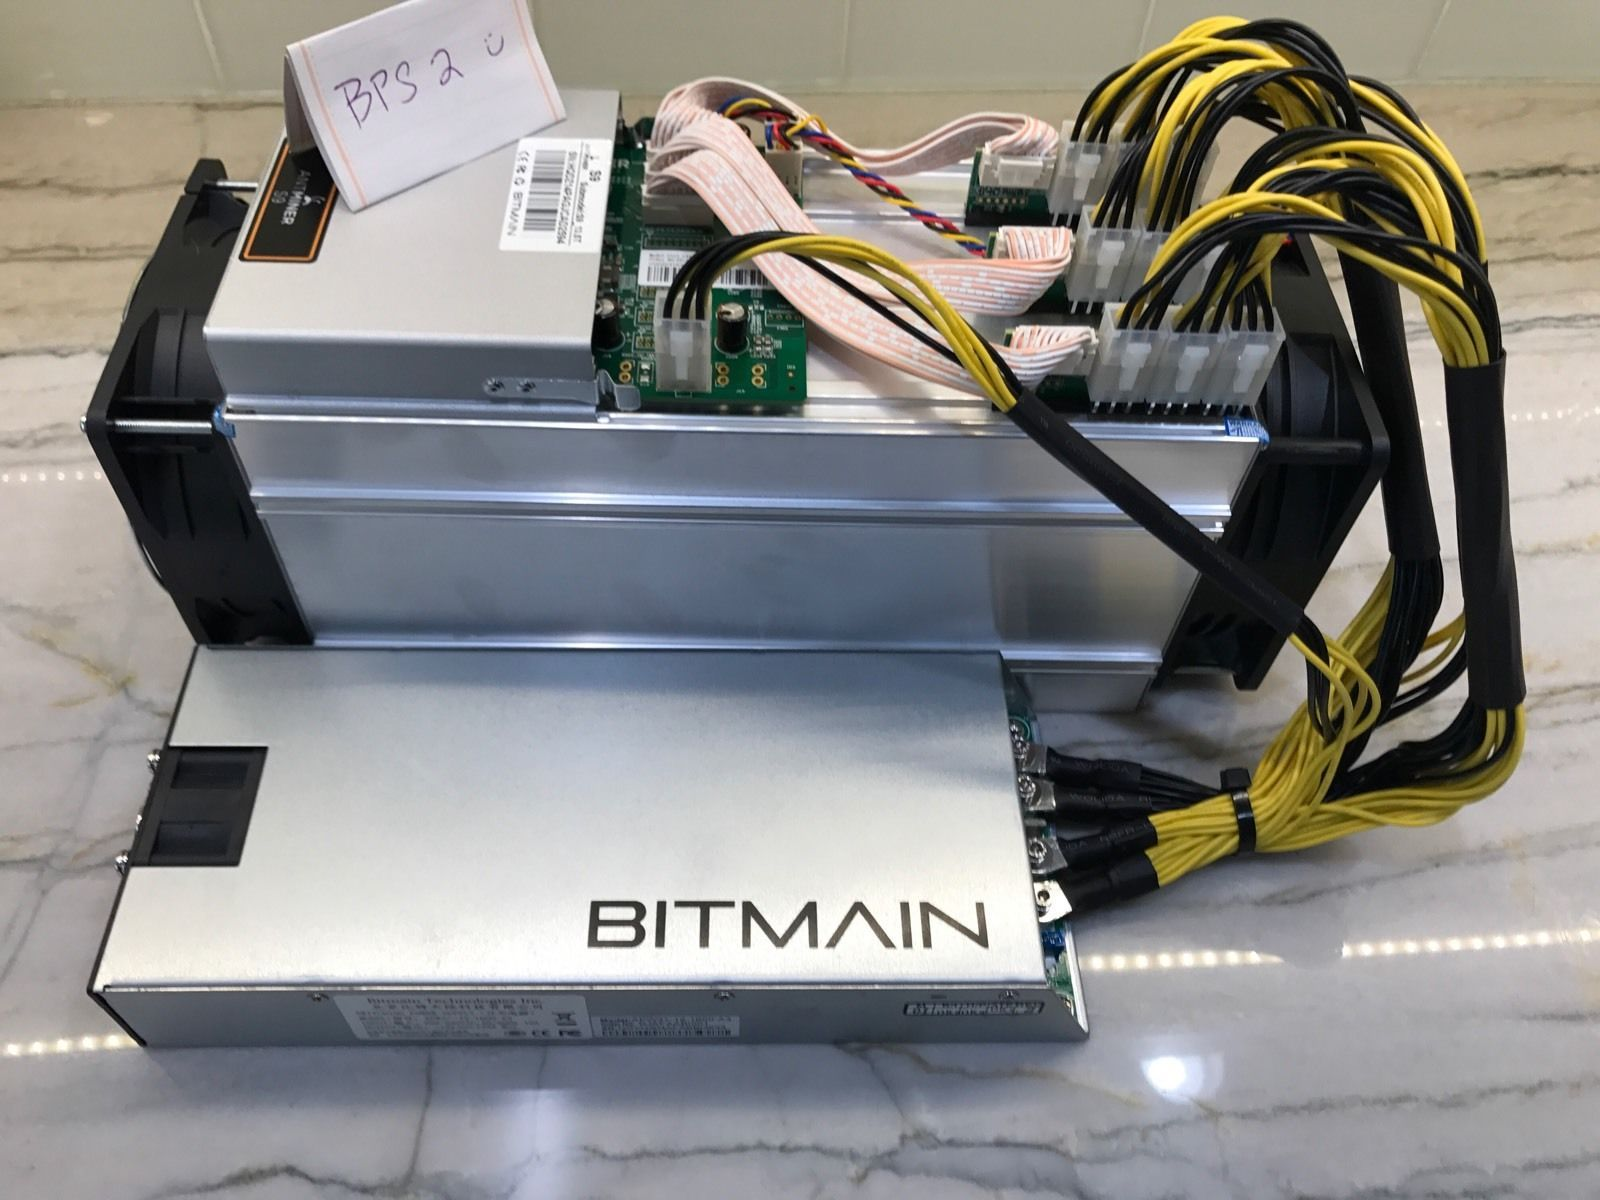 Details about Bitmain Power Supply Antminer Bitcoin APW3++ 12V 1600W